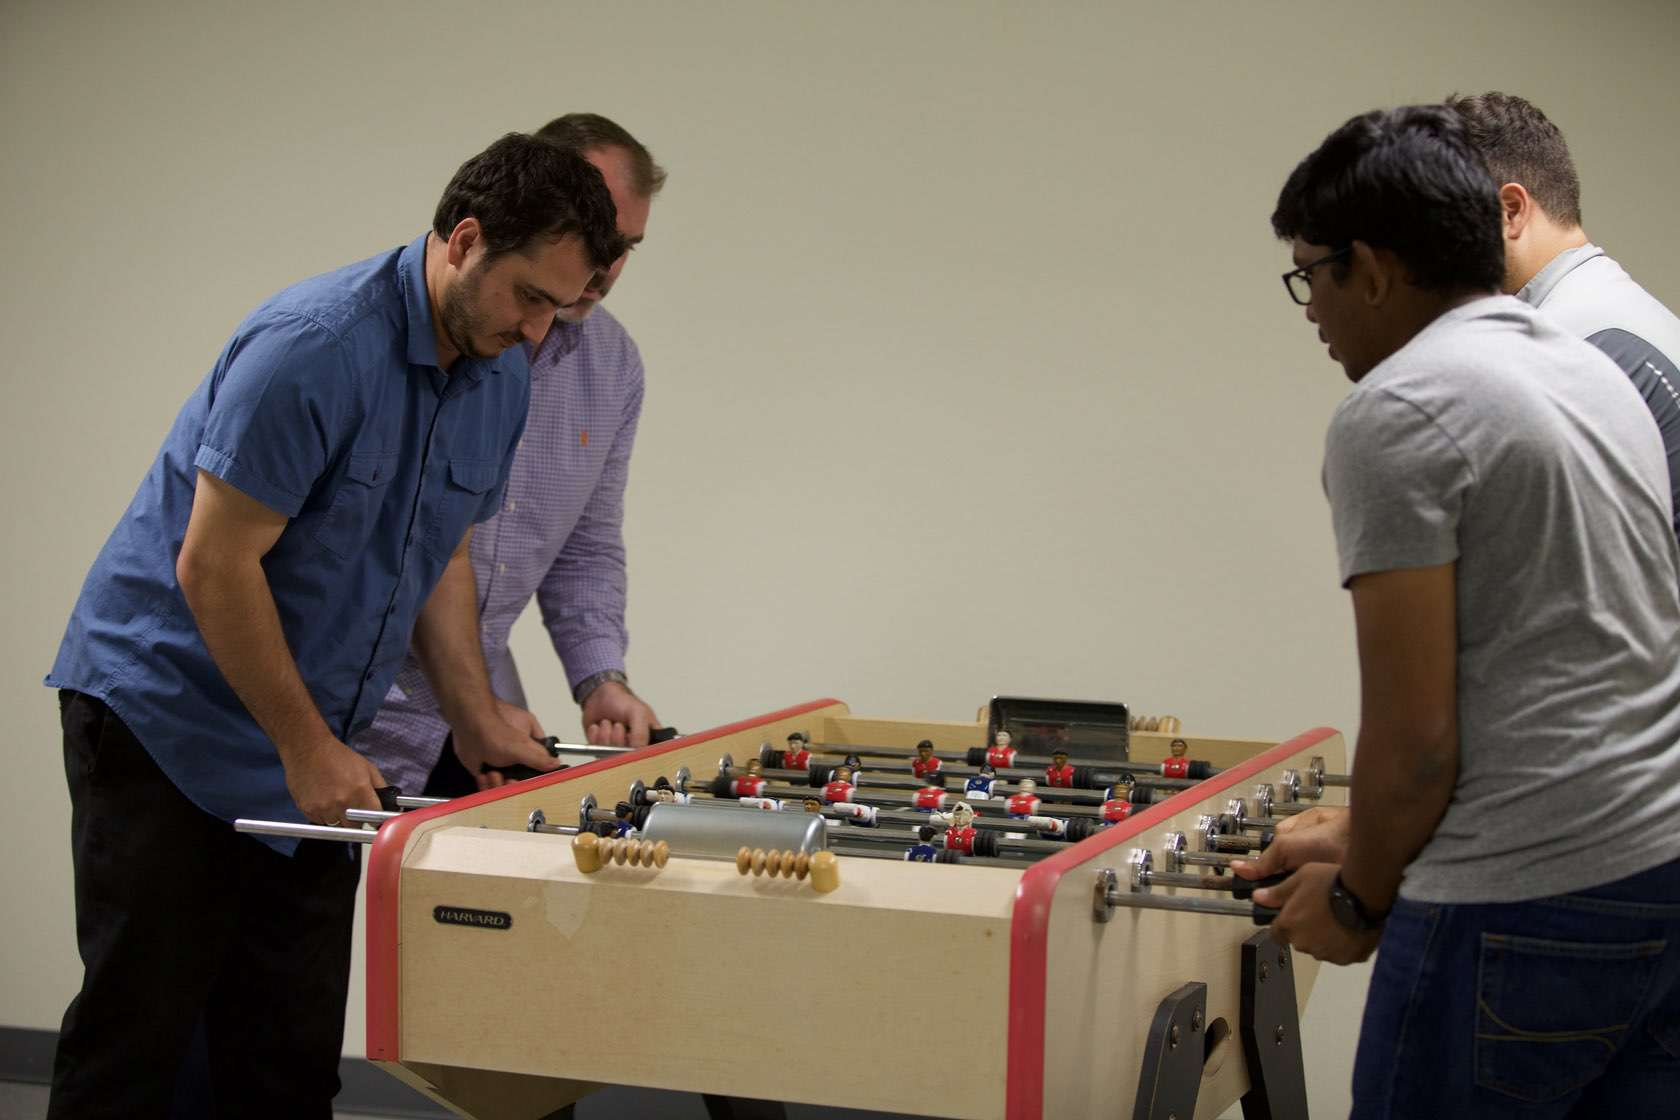 BlueCart employees playing foosball